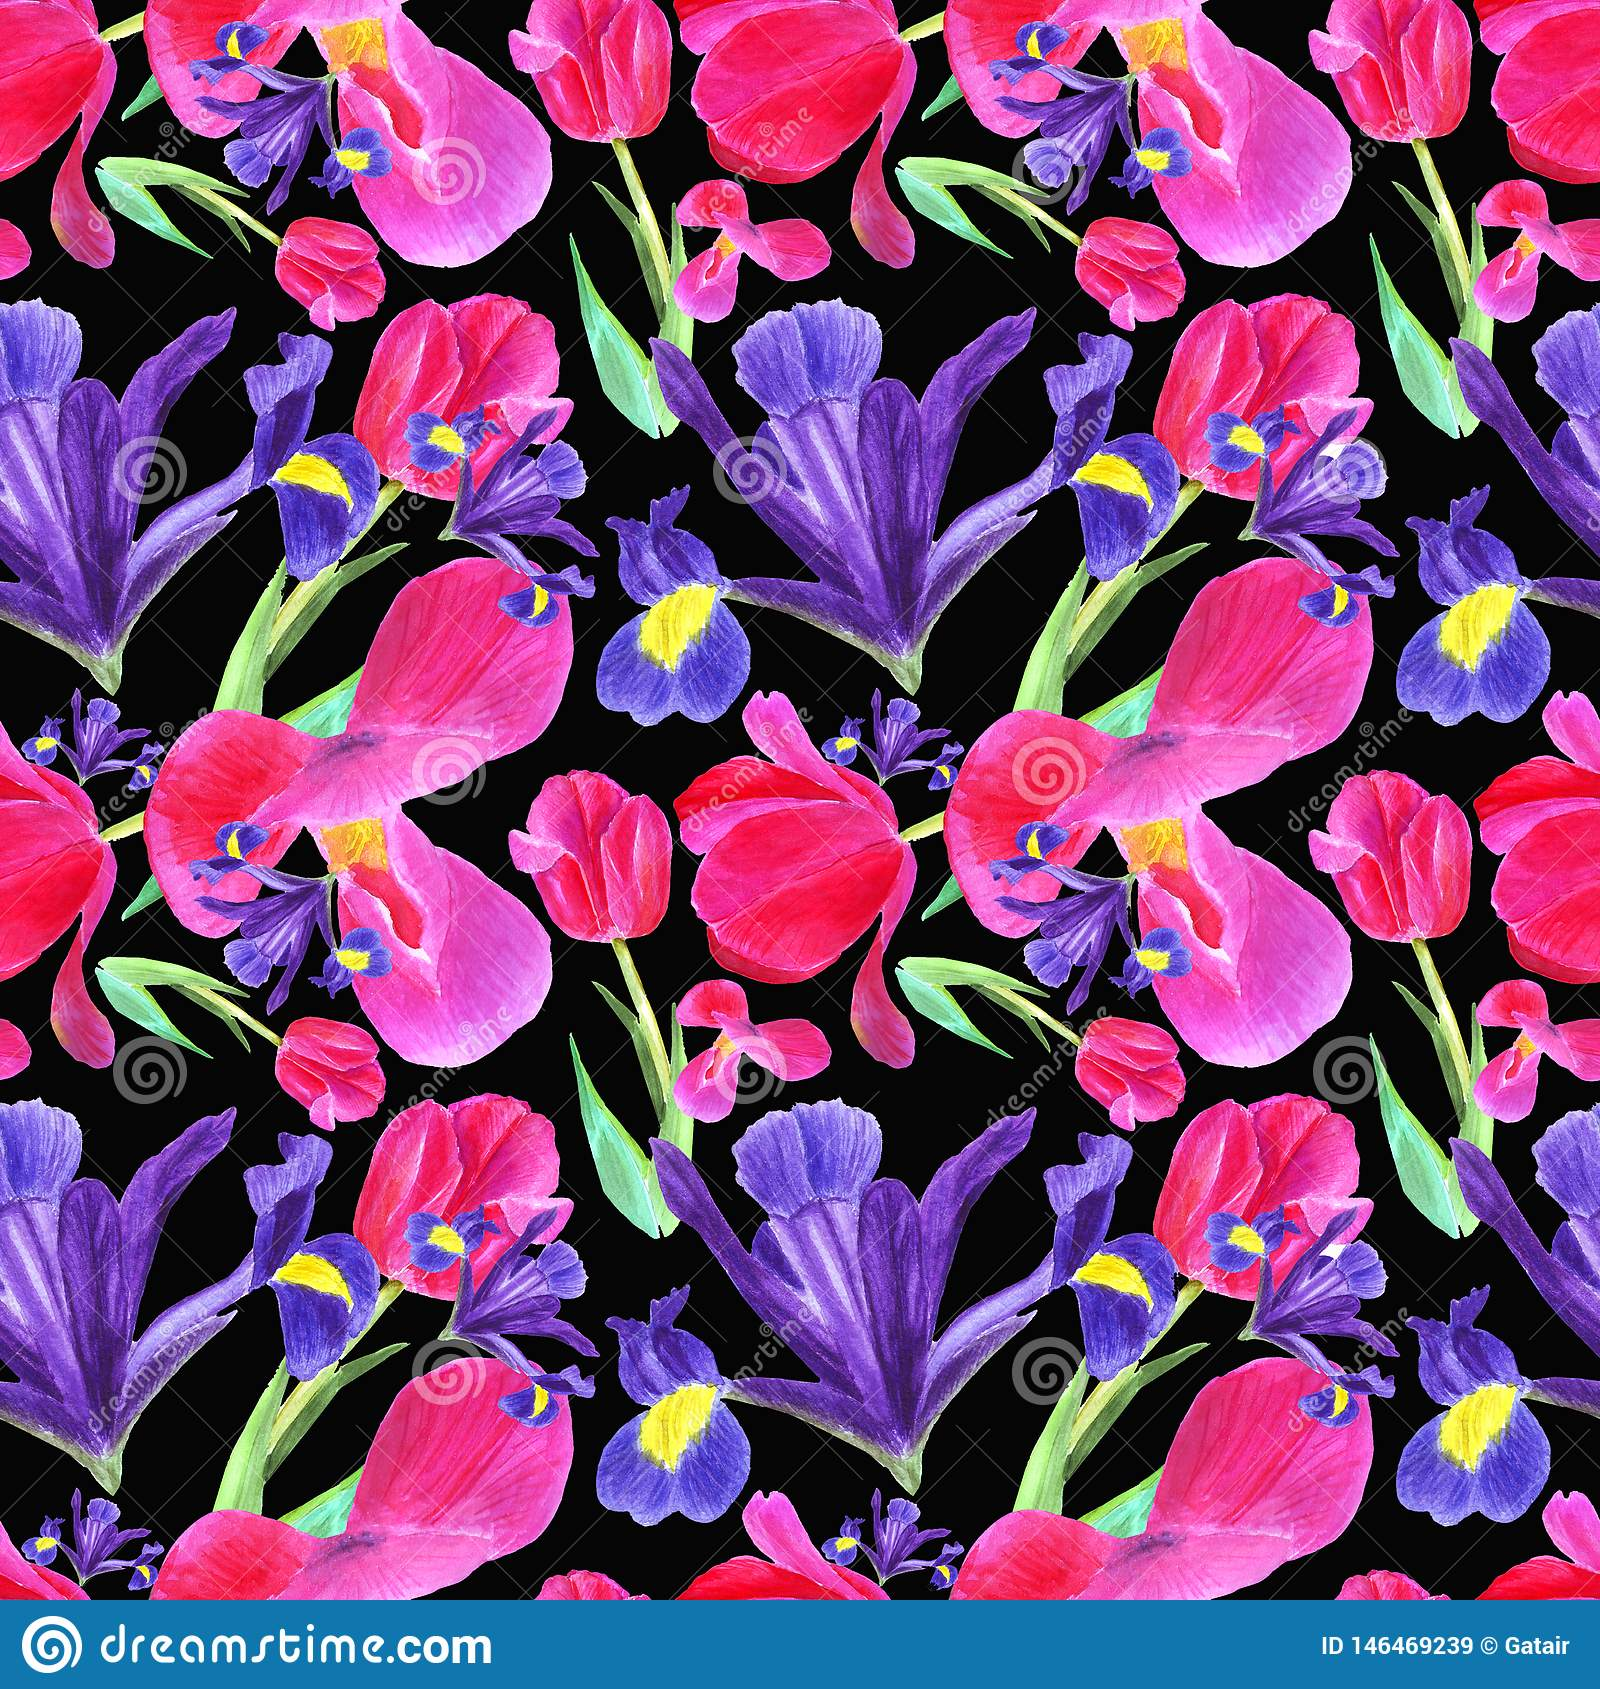 watercolor iris, tulip and leaves seamless pattern on black background